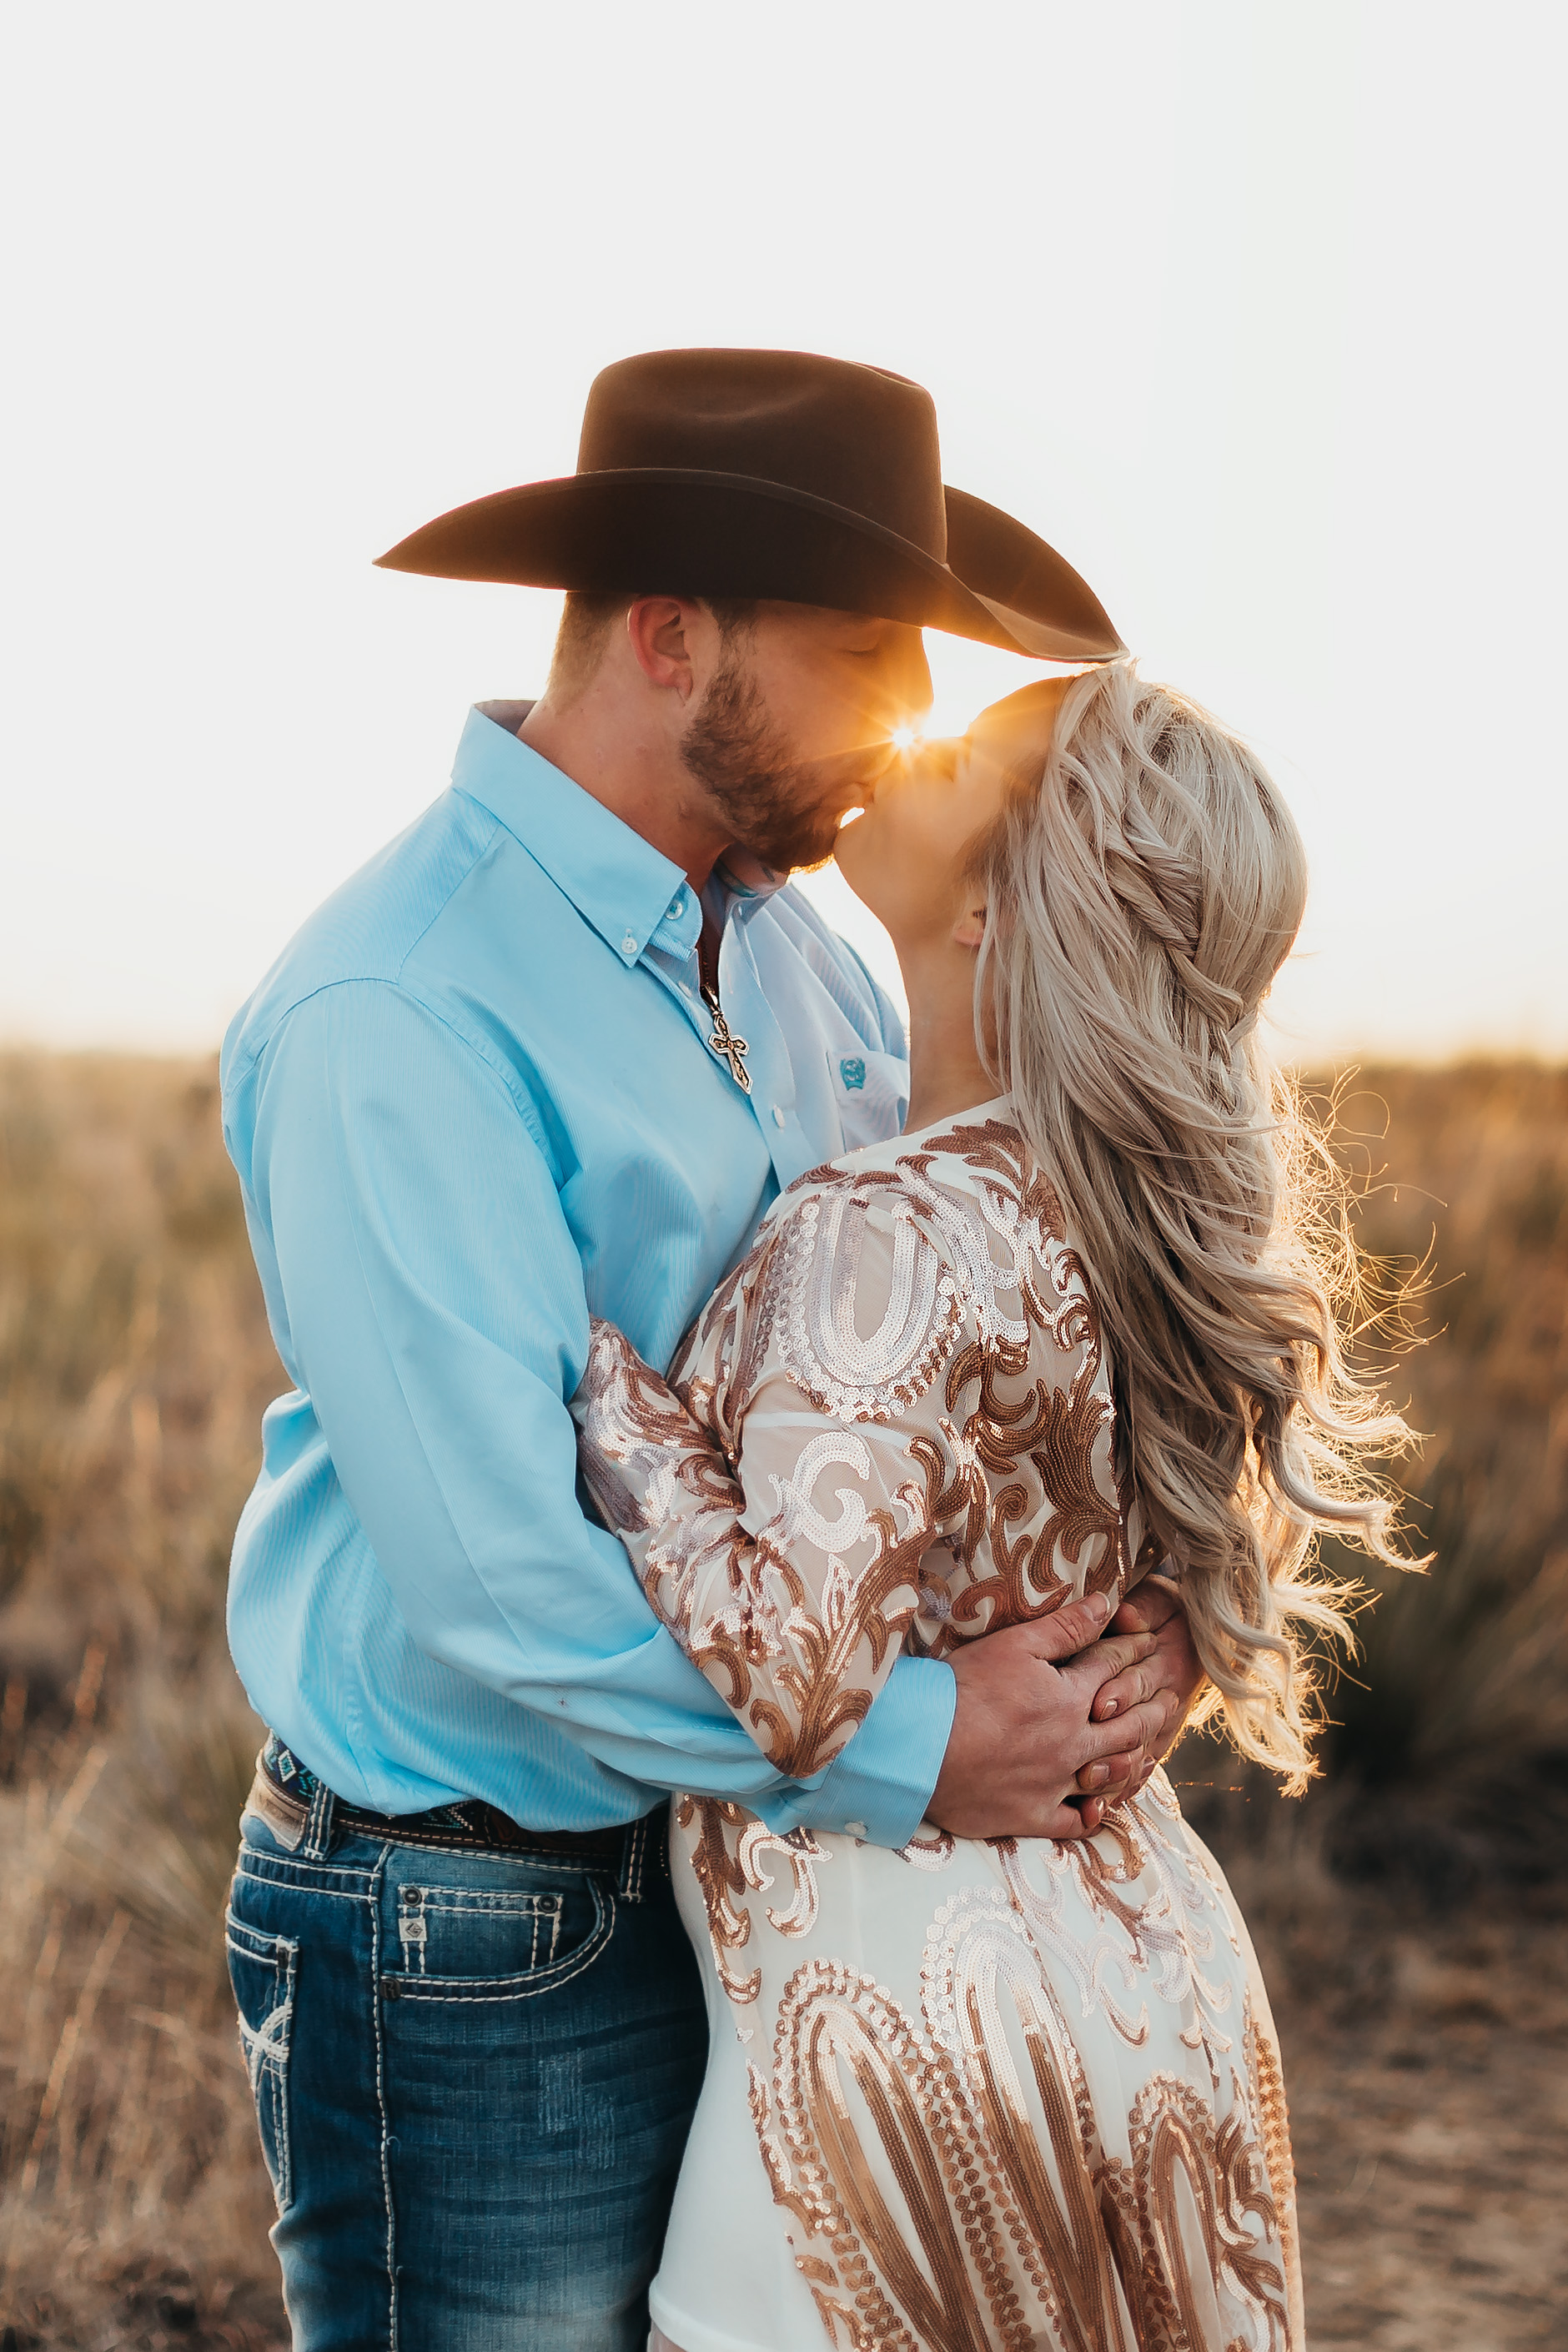 Sun set in the middle of an engagement kiss accenting wardrobe choices and cowboy hat #engagementphotos #engaged #personality #amarillotexas #engagementphotographer #lifestylephotos #amarillophotographer #locationchoice #texasengagementphotos #engagment #tealawardphotography #westernstyle